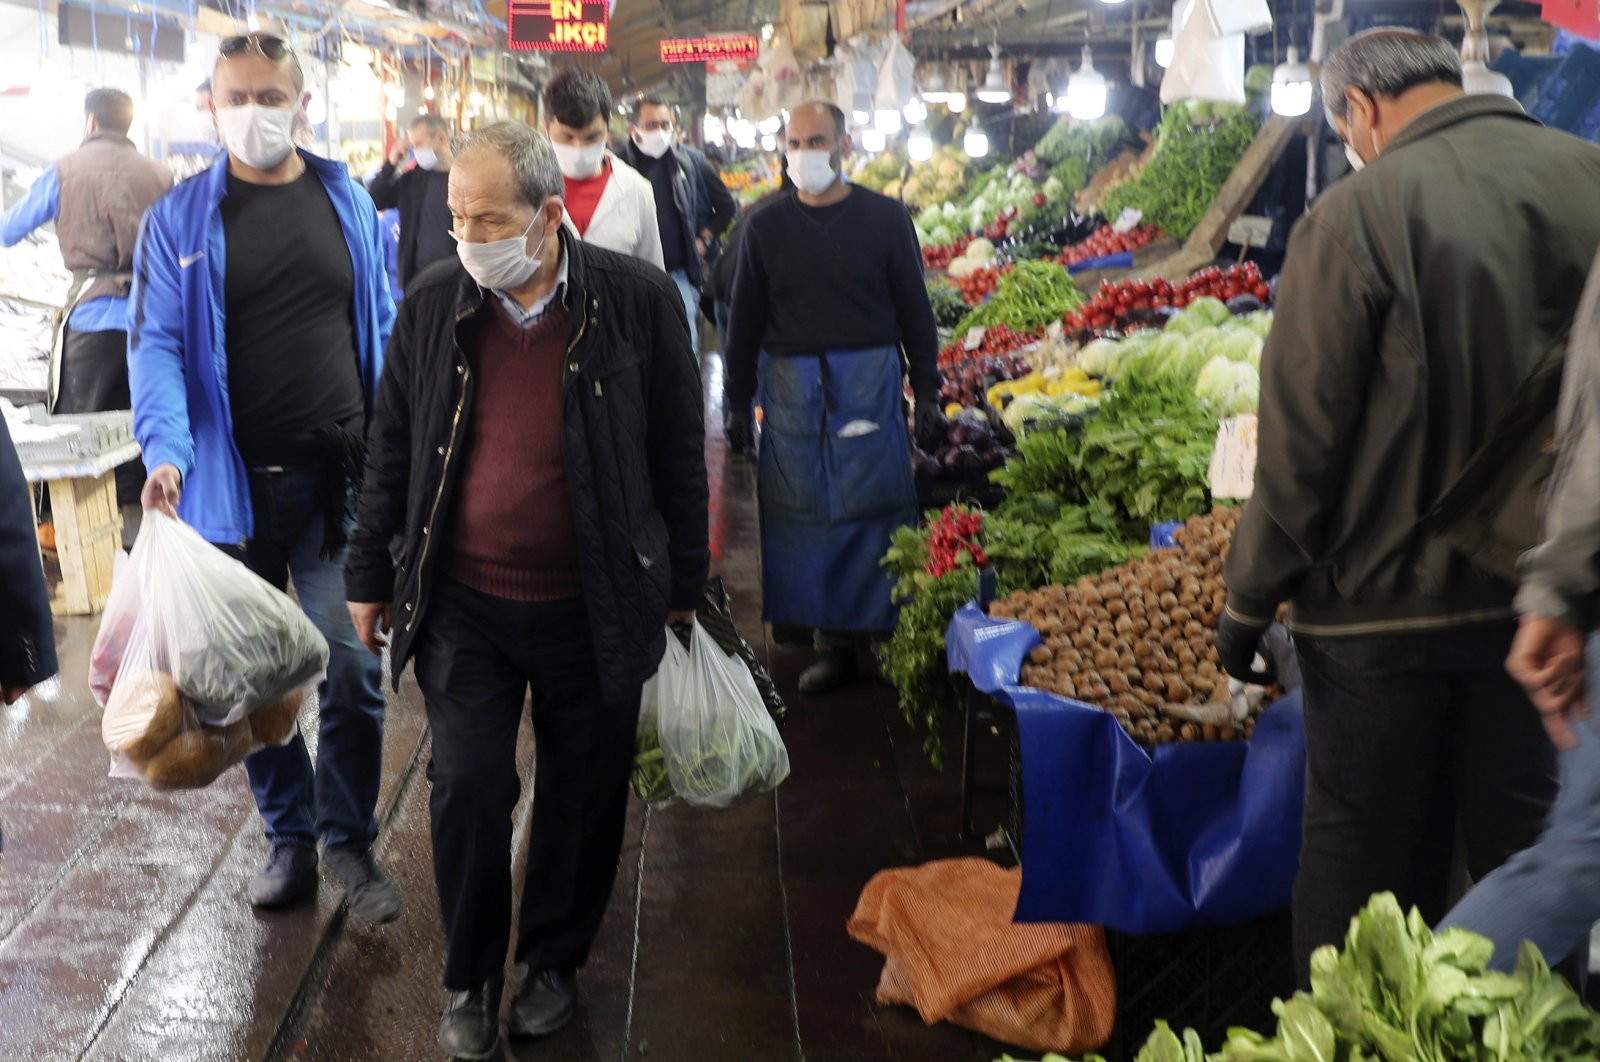 People wearing face masks leave a food market just hours before the start of a two-day curfew declared by the government in an attempt to slow down the spread of coronavirus, in Ankara, Turkey, Friday, April 17, 2020. (AP Photo)